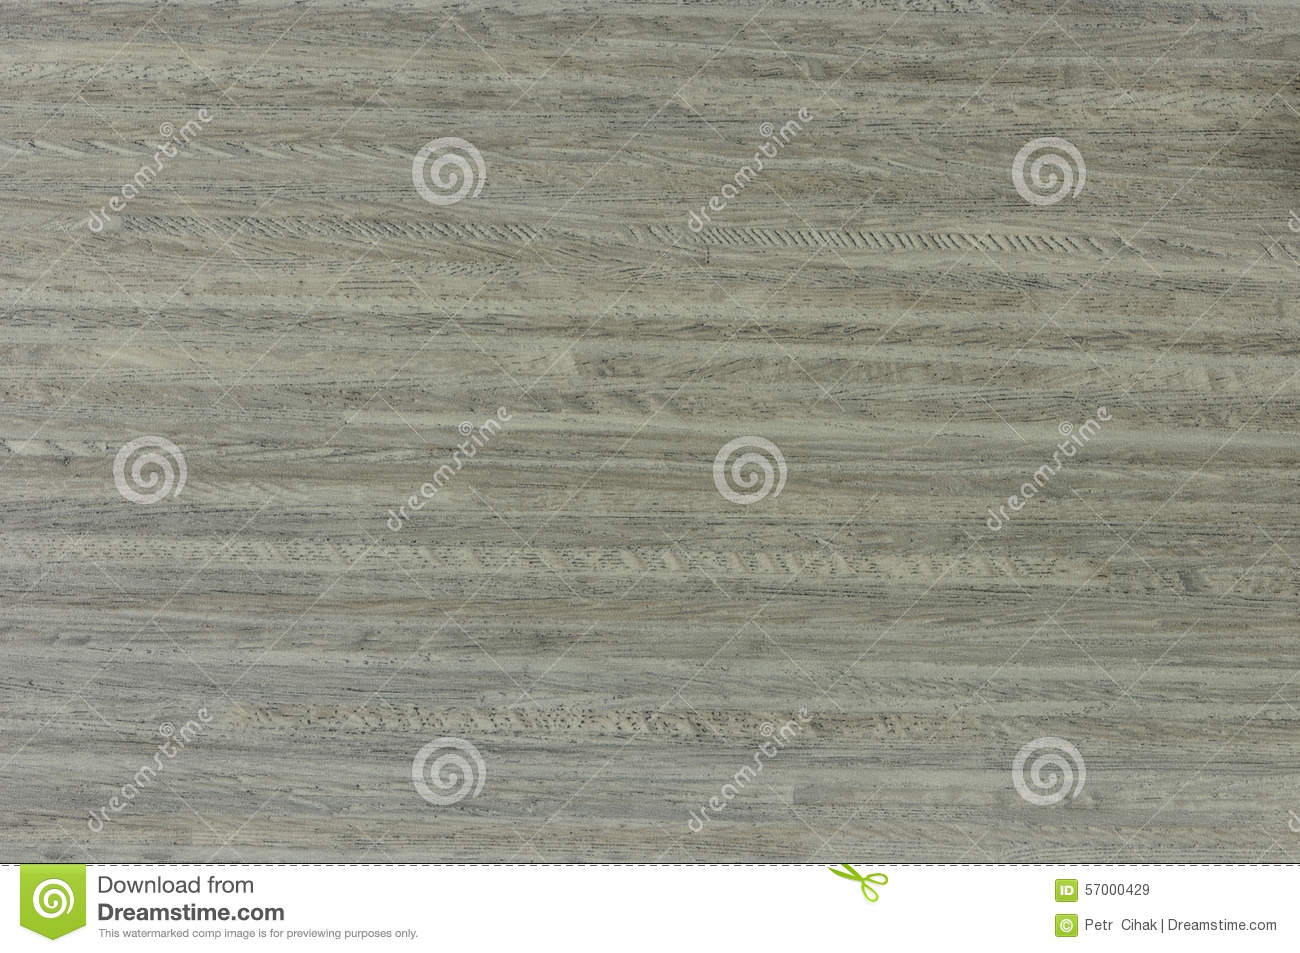 Birch imitation floor covering stock photo image 57000429 for Floor covering software free